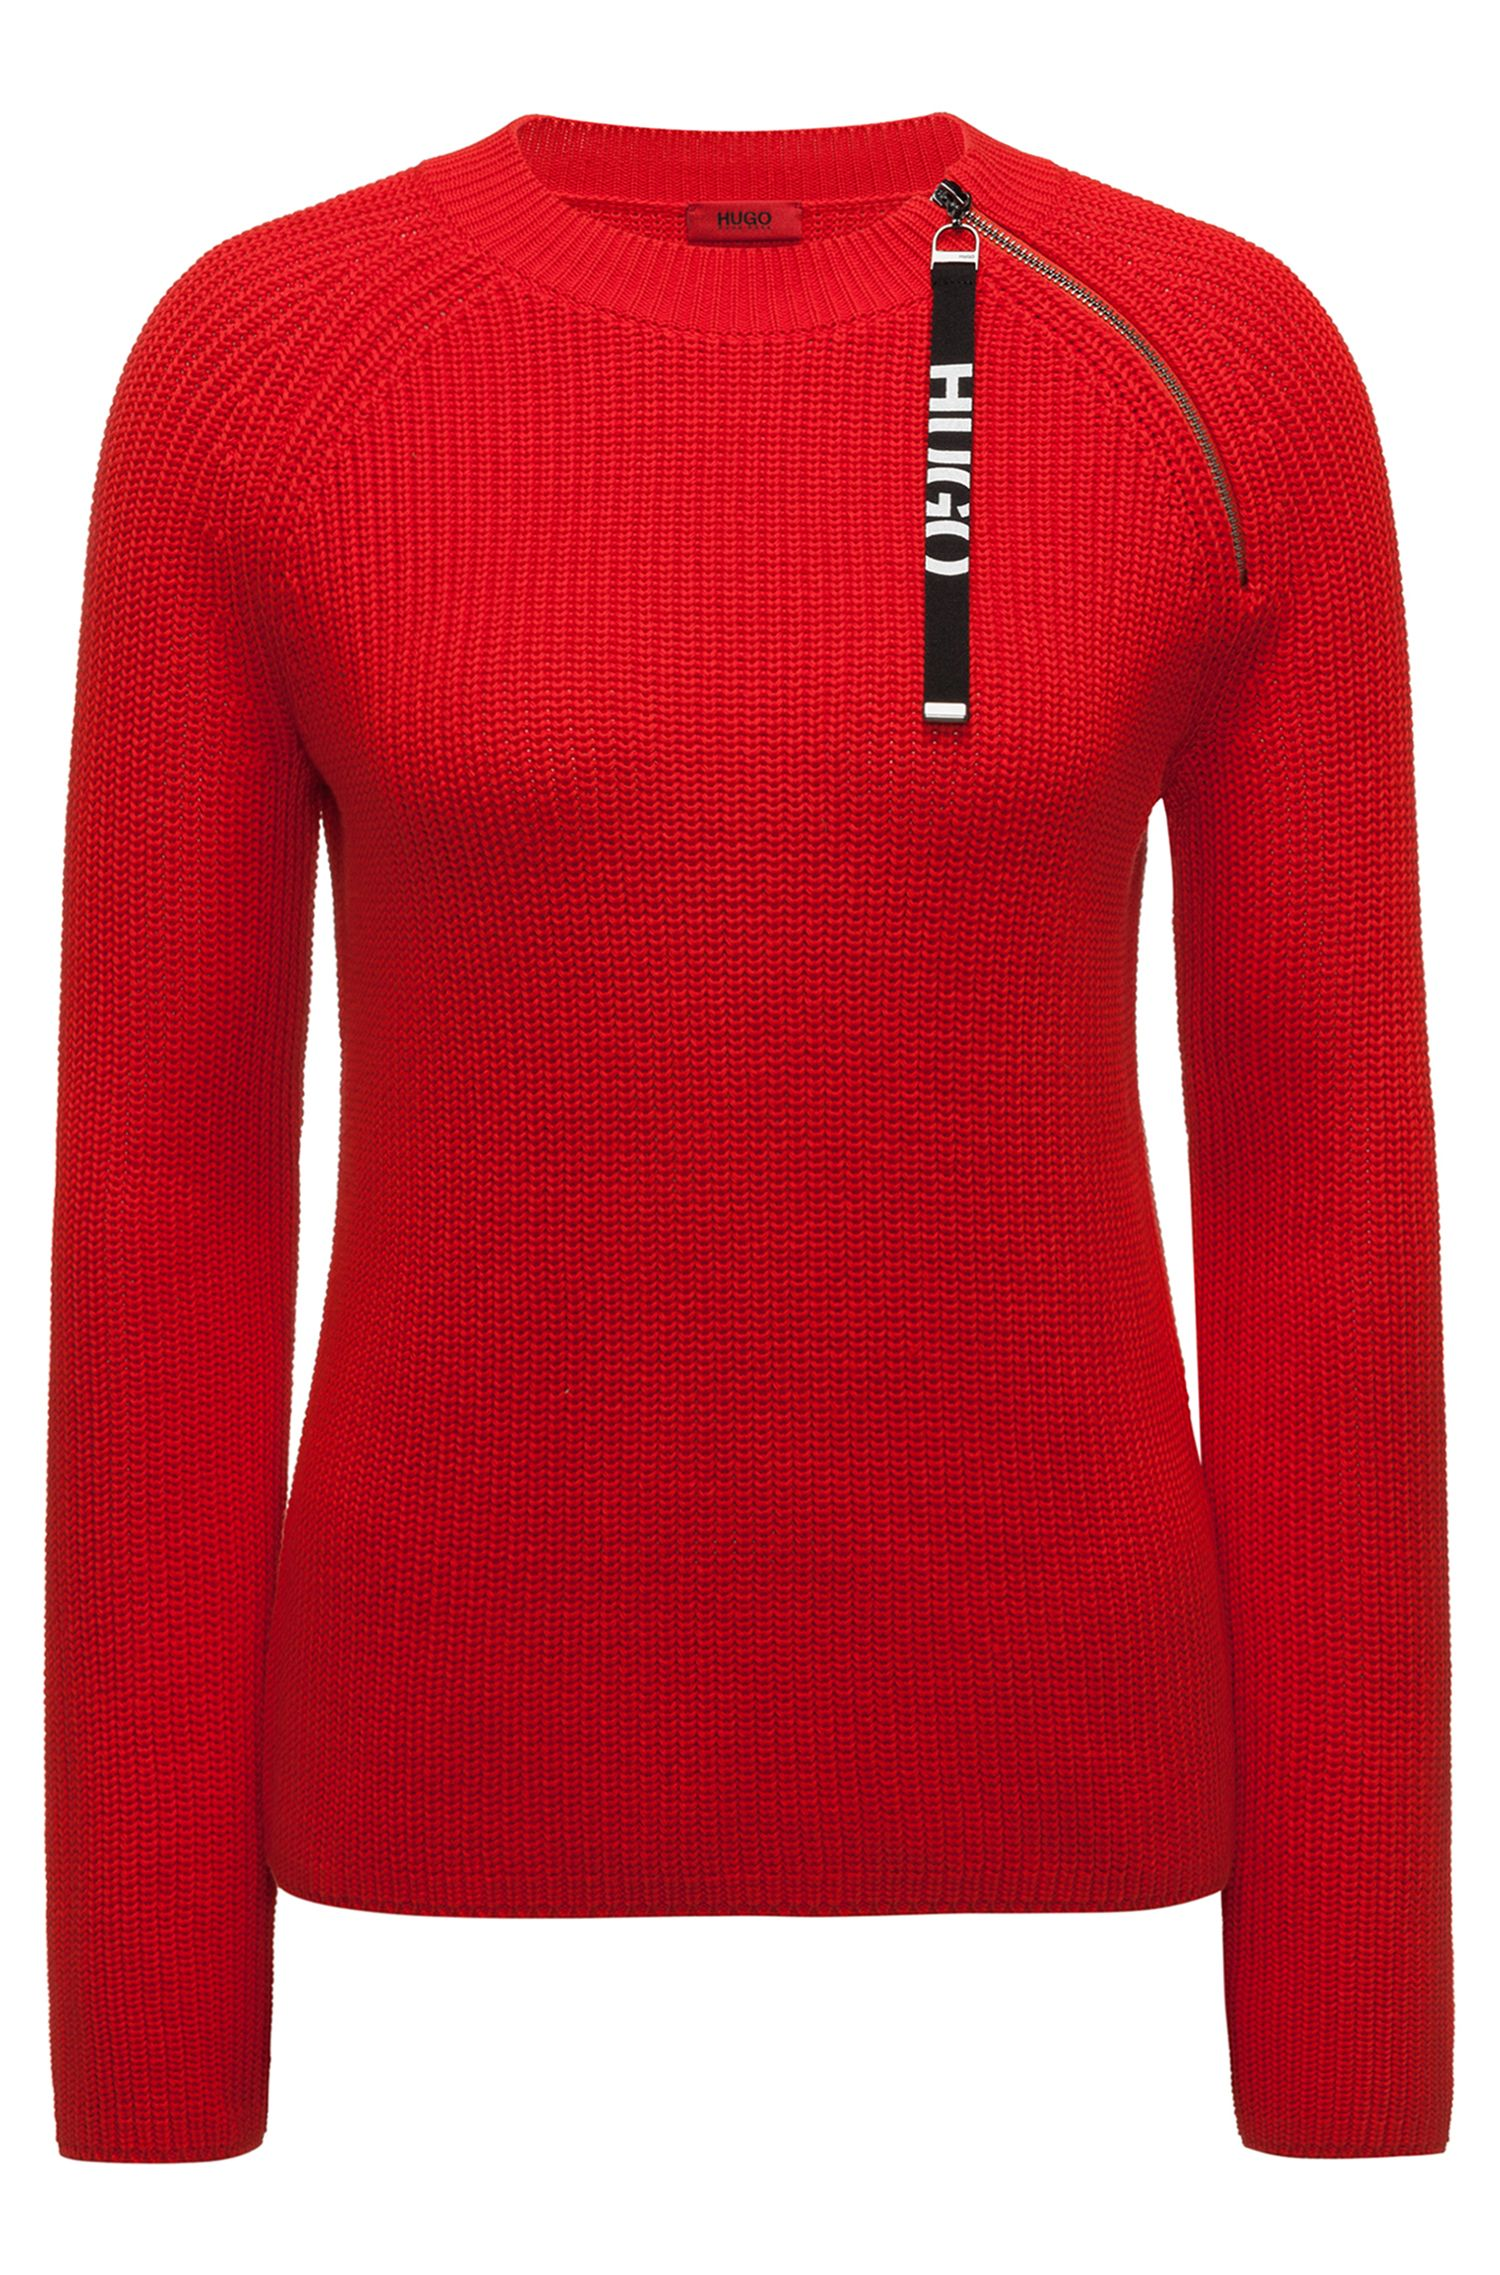 Cotton sweater with logo-tape zipped seam